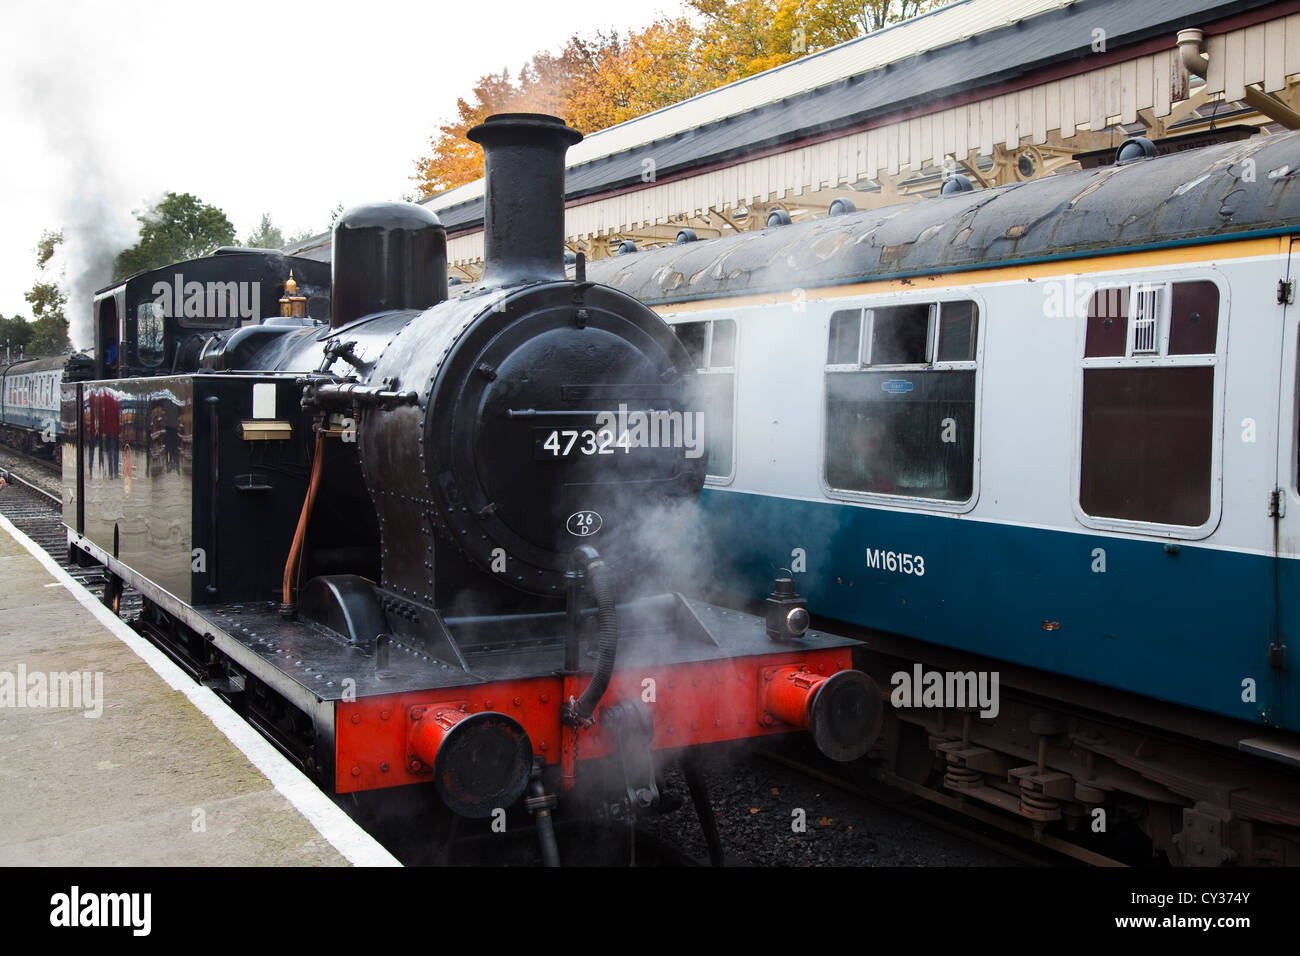 LMS Class 3F 'Jinty', 47324 Shunting engine at Ramsbottom Station, lancashire, UK Stock Photo